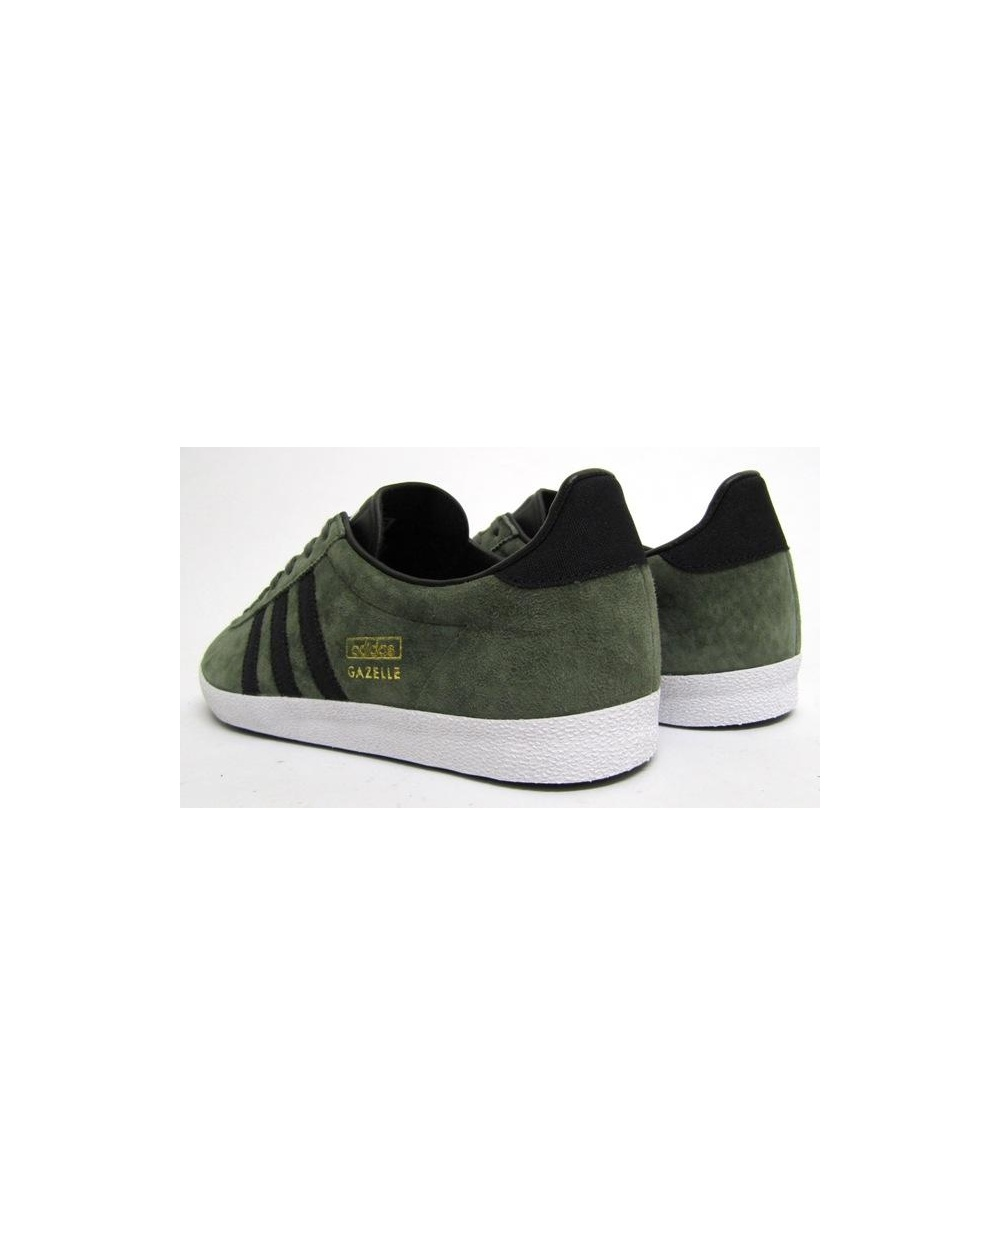 adidas gazelle green and black